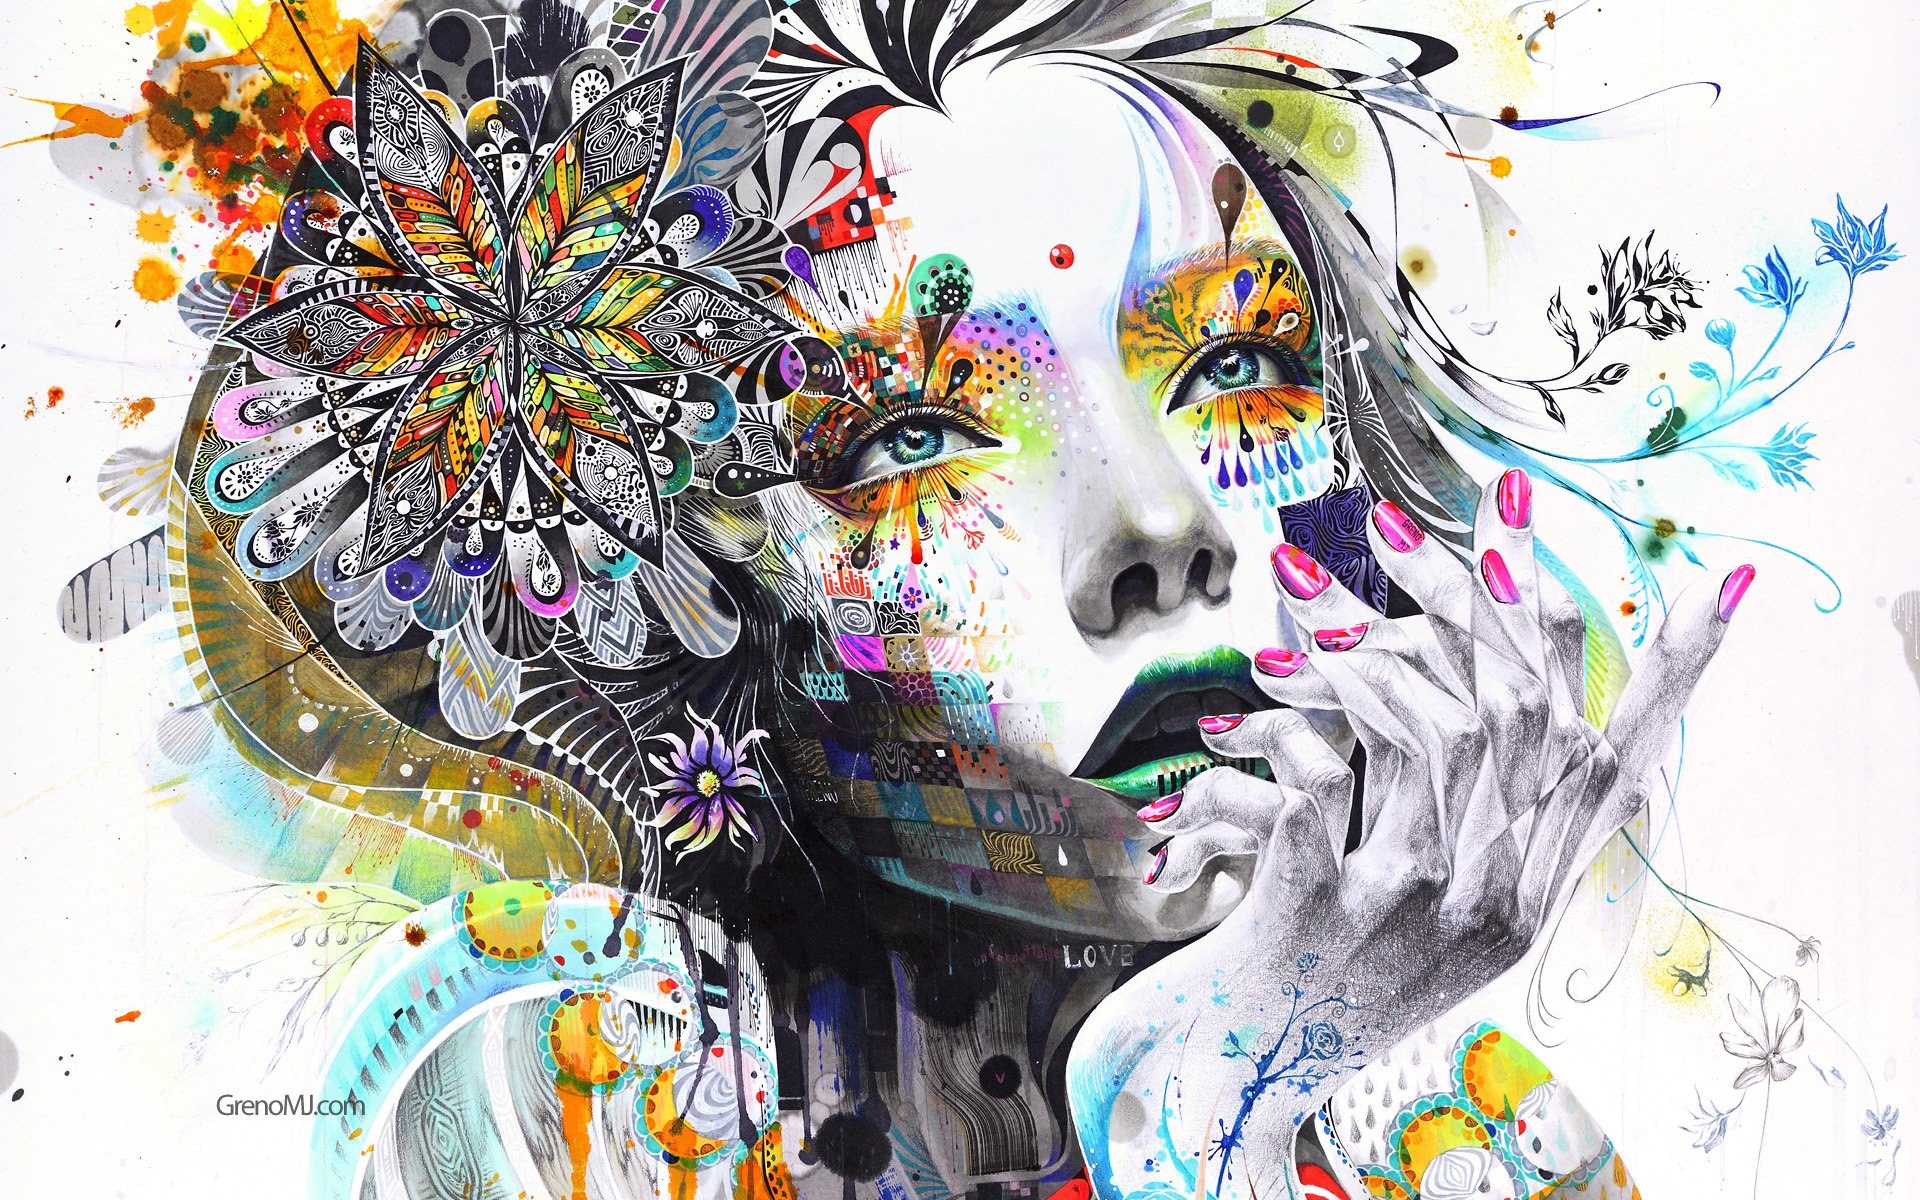 Artístico - Mujeres  Minjae Lee Artístico Colorful Flor Cara Portrait Woman Colores Surrealism Fondo de Pantalla